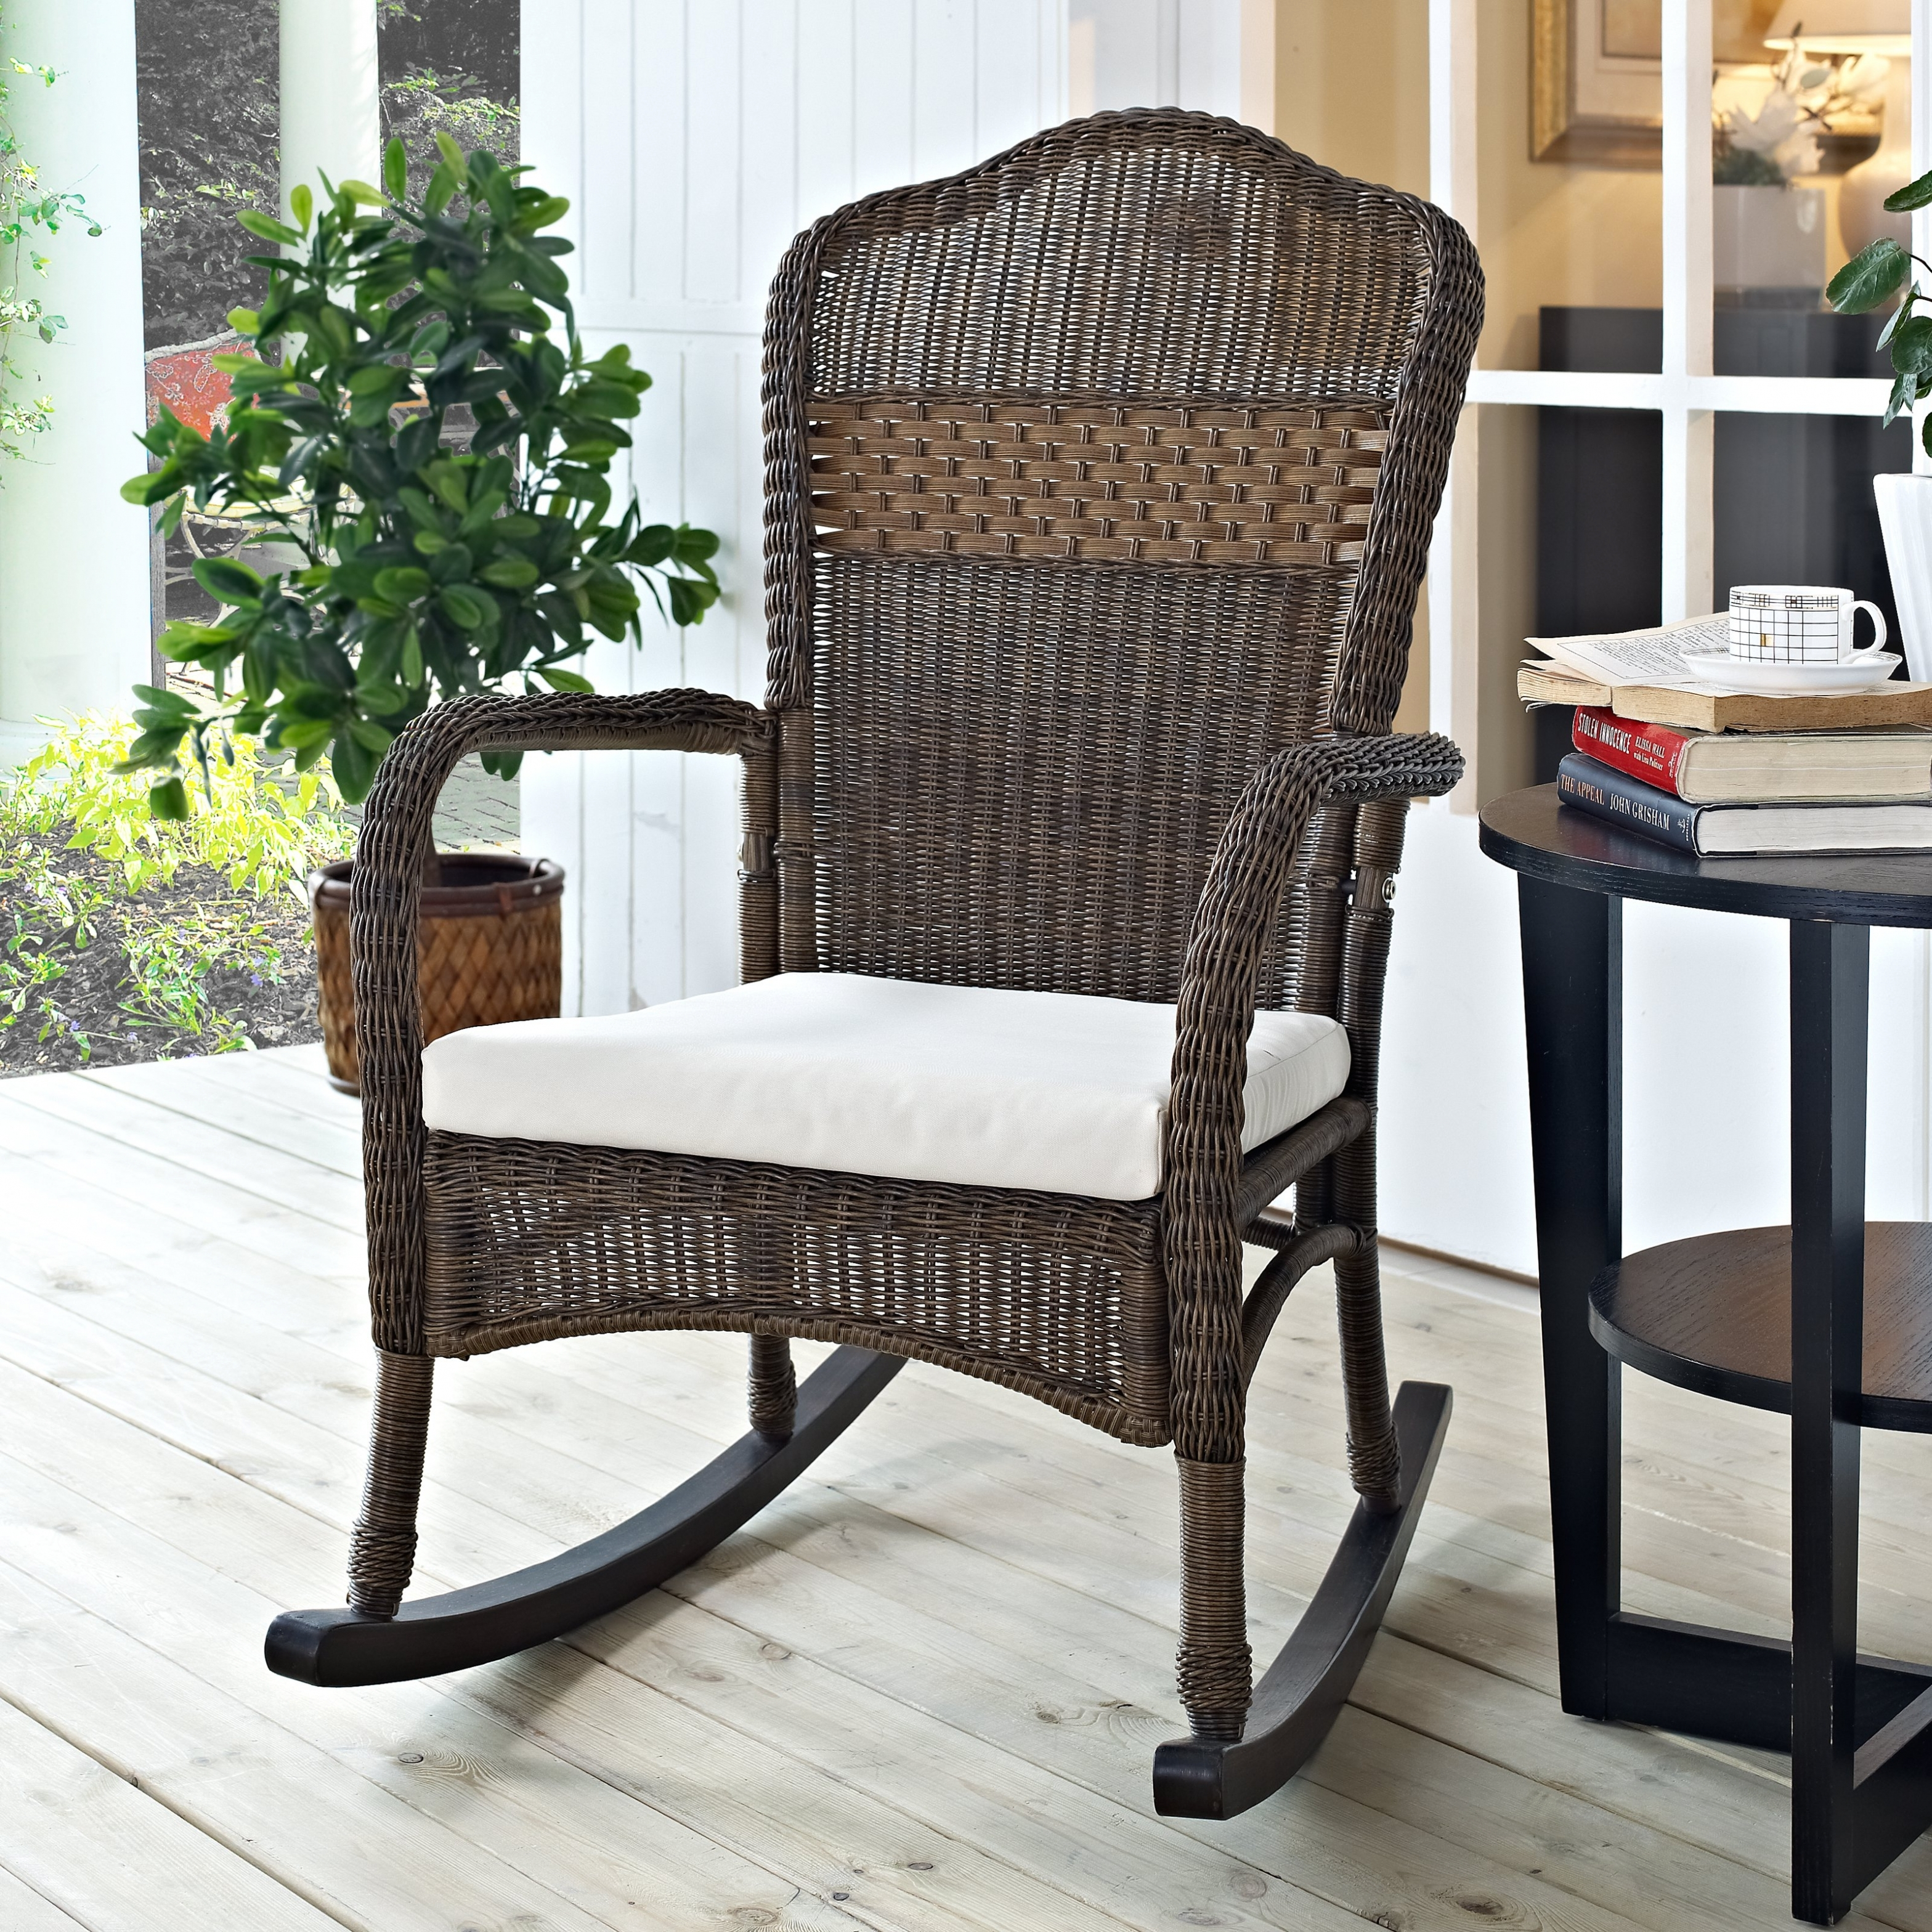 Chairs: Coral Coast Casco Bay Resin Wicker Rocking Chair With Pertaining To Outdoor Rocking Chairs With Cushions (View 7 of 15)